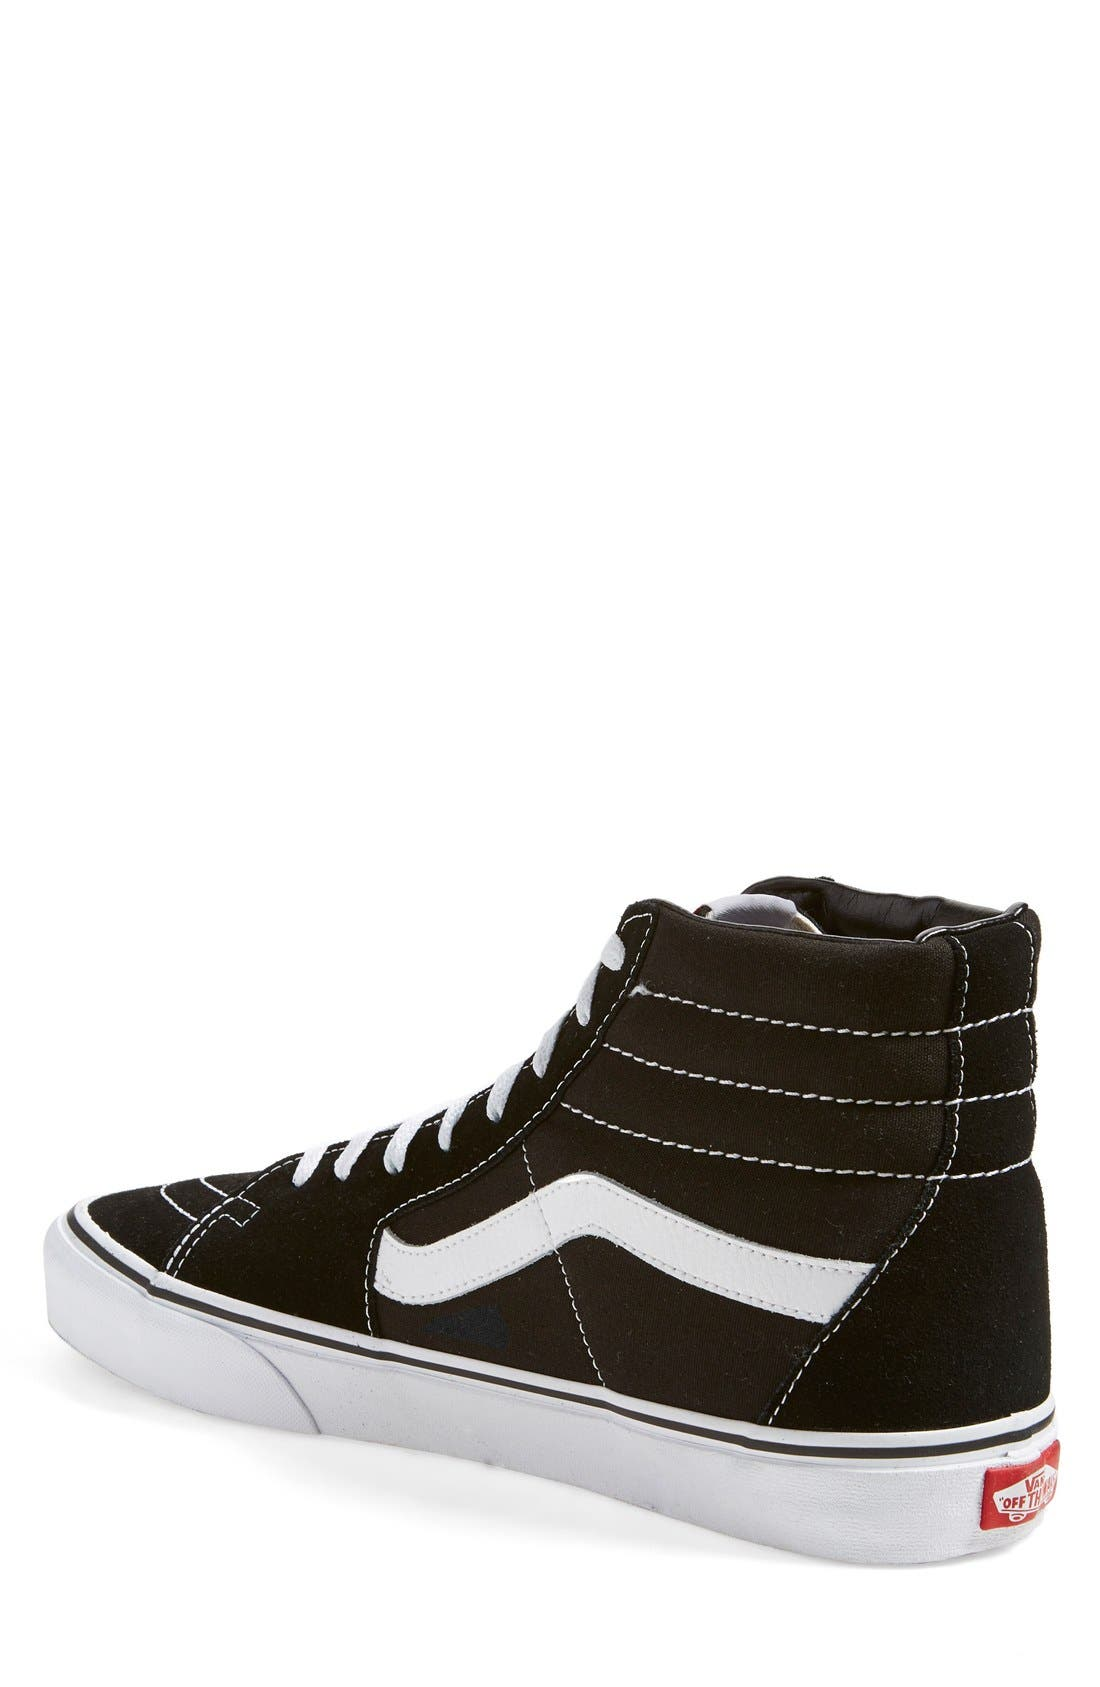 Alternate Image 2  - Vans 'Sk8-Hi' Sneaker (Men)